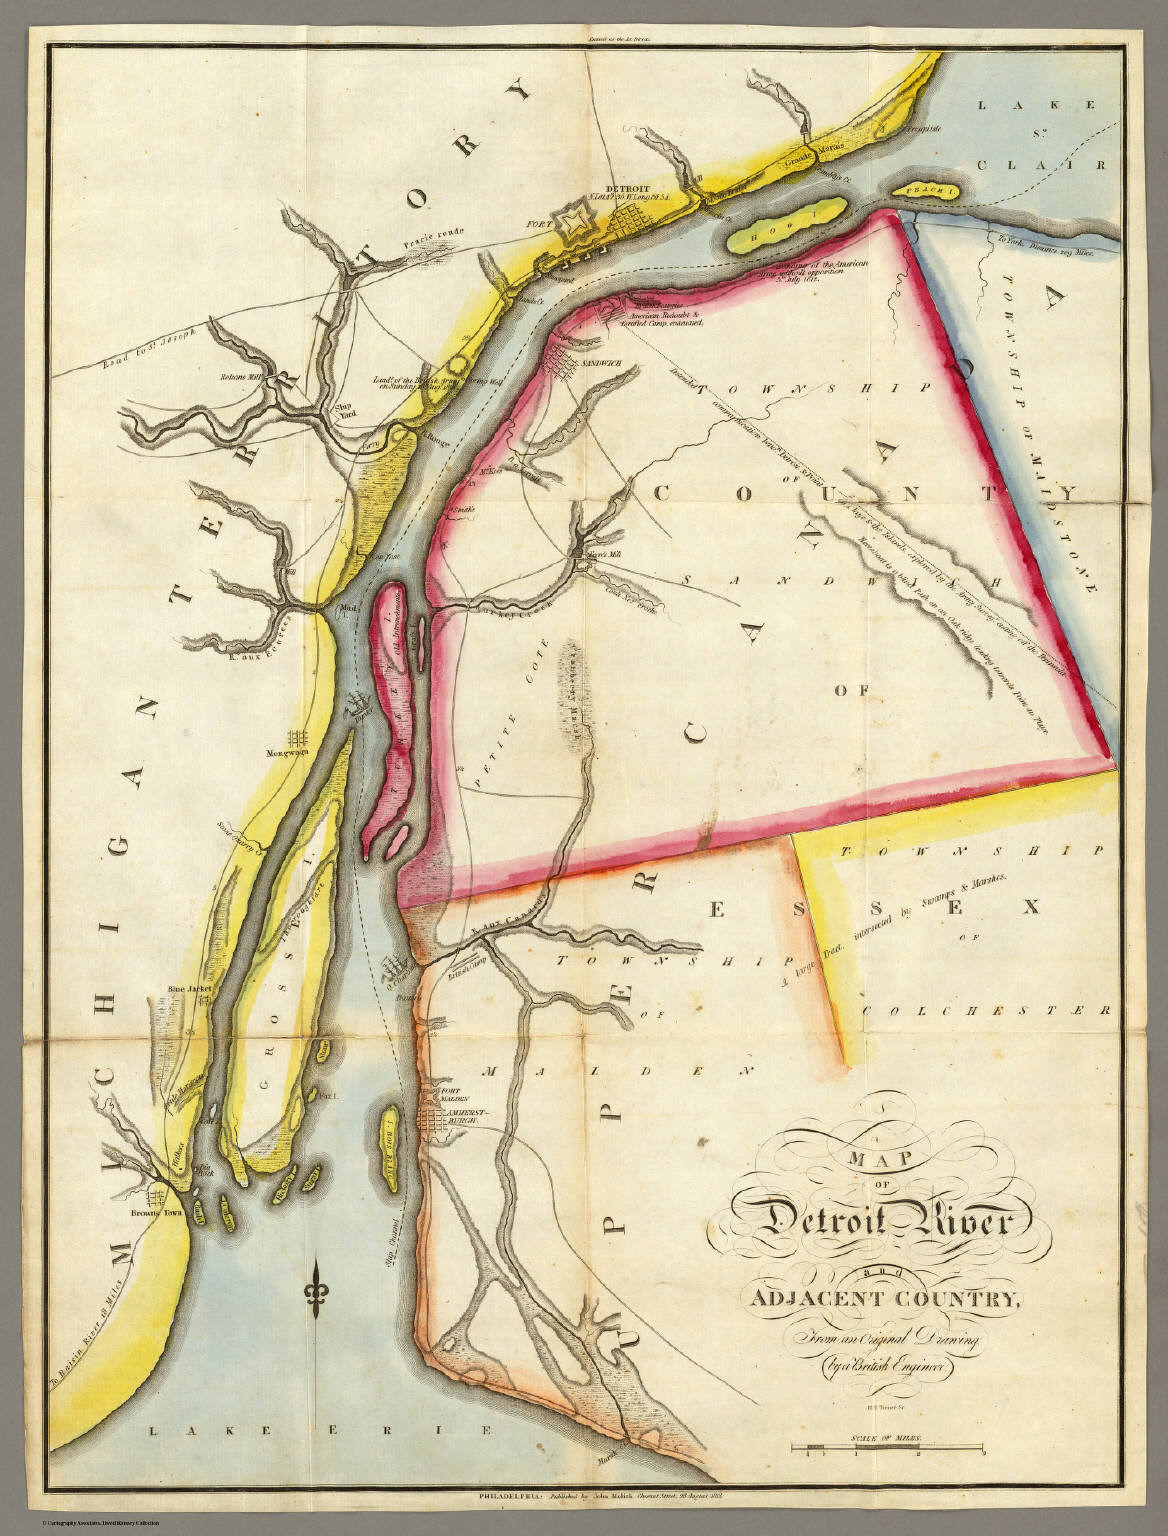 Map Of Detroit River And Adjacent Country David Rumsey - Map of new orleans rivers